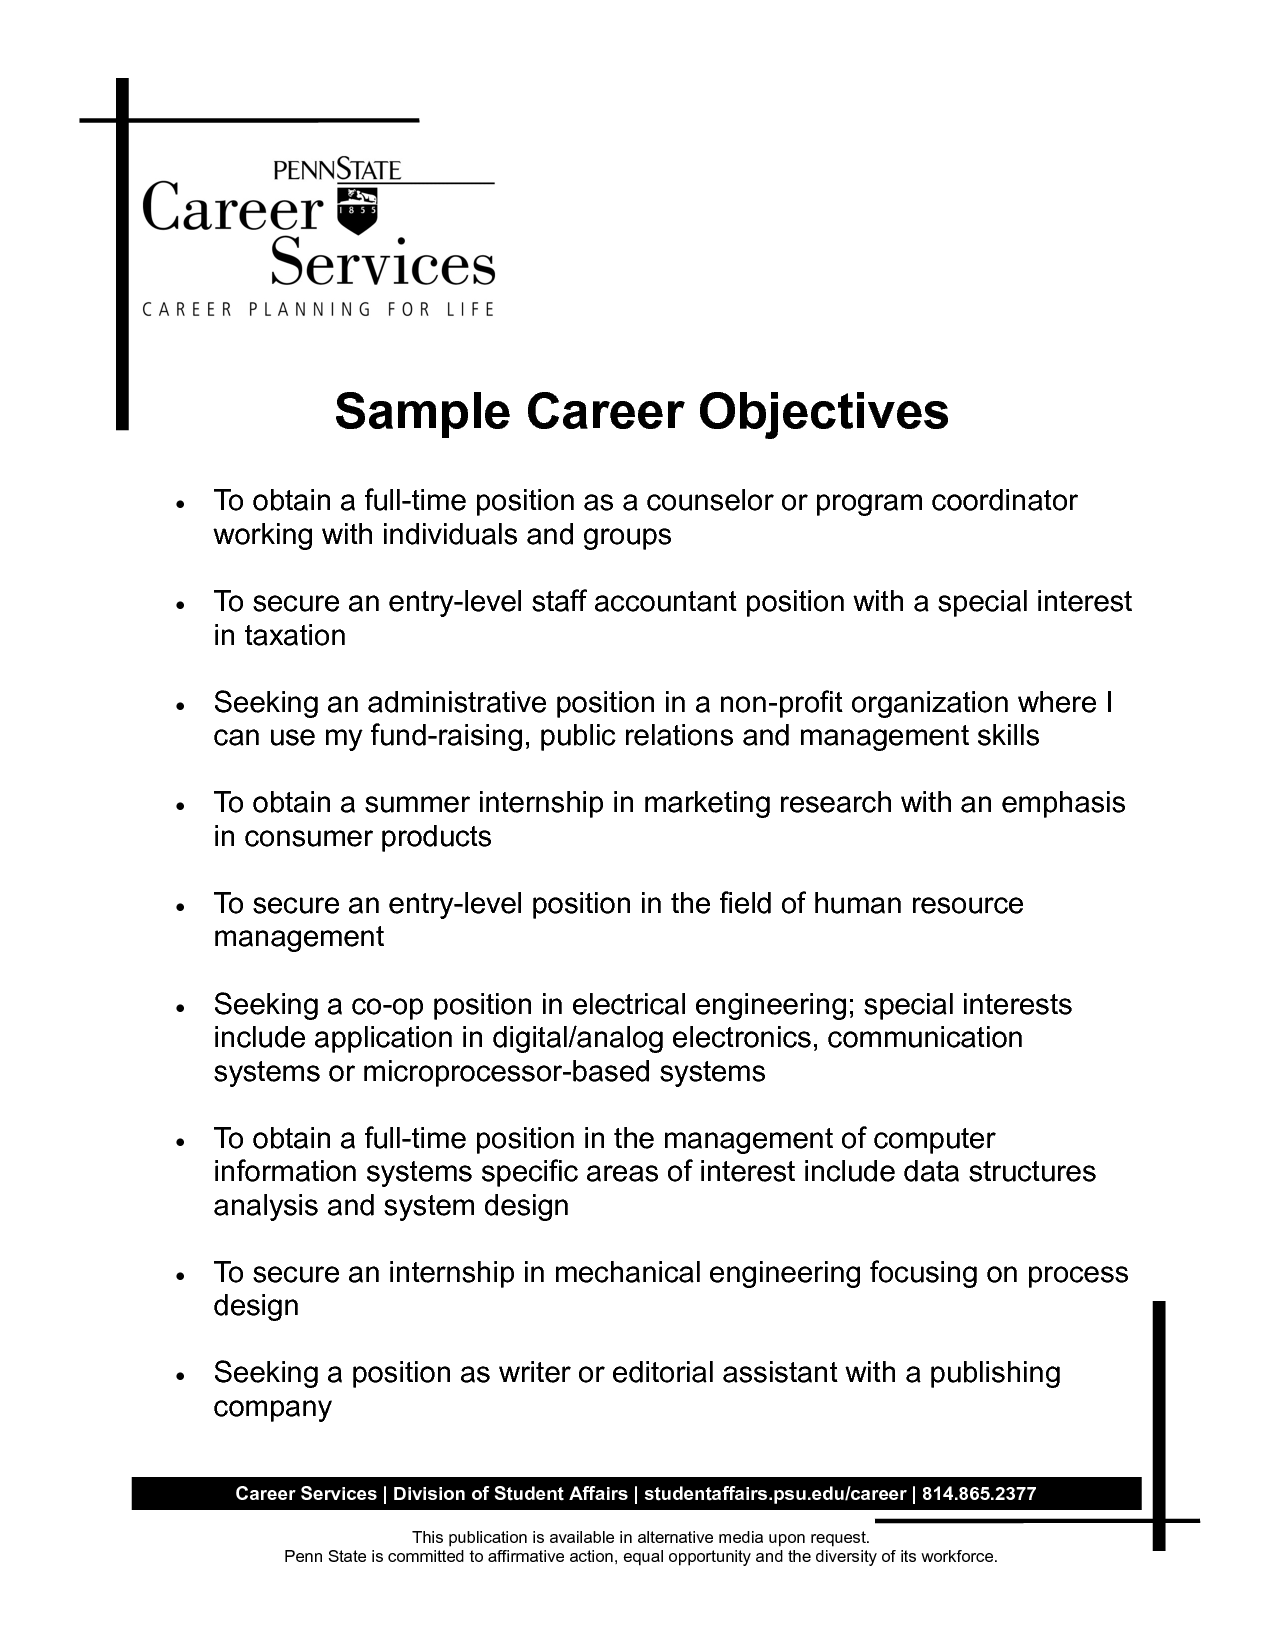 samples of career goals - How To Write A Good Objective For Resume